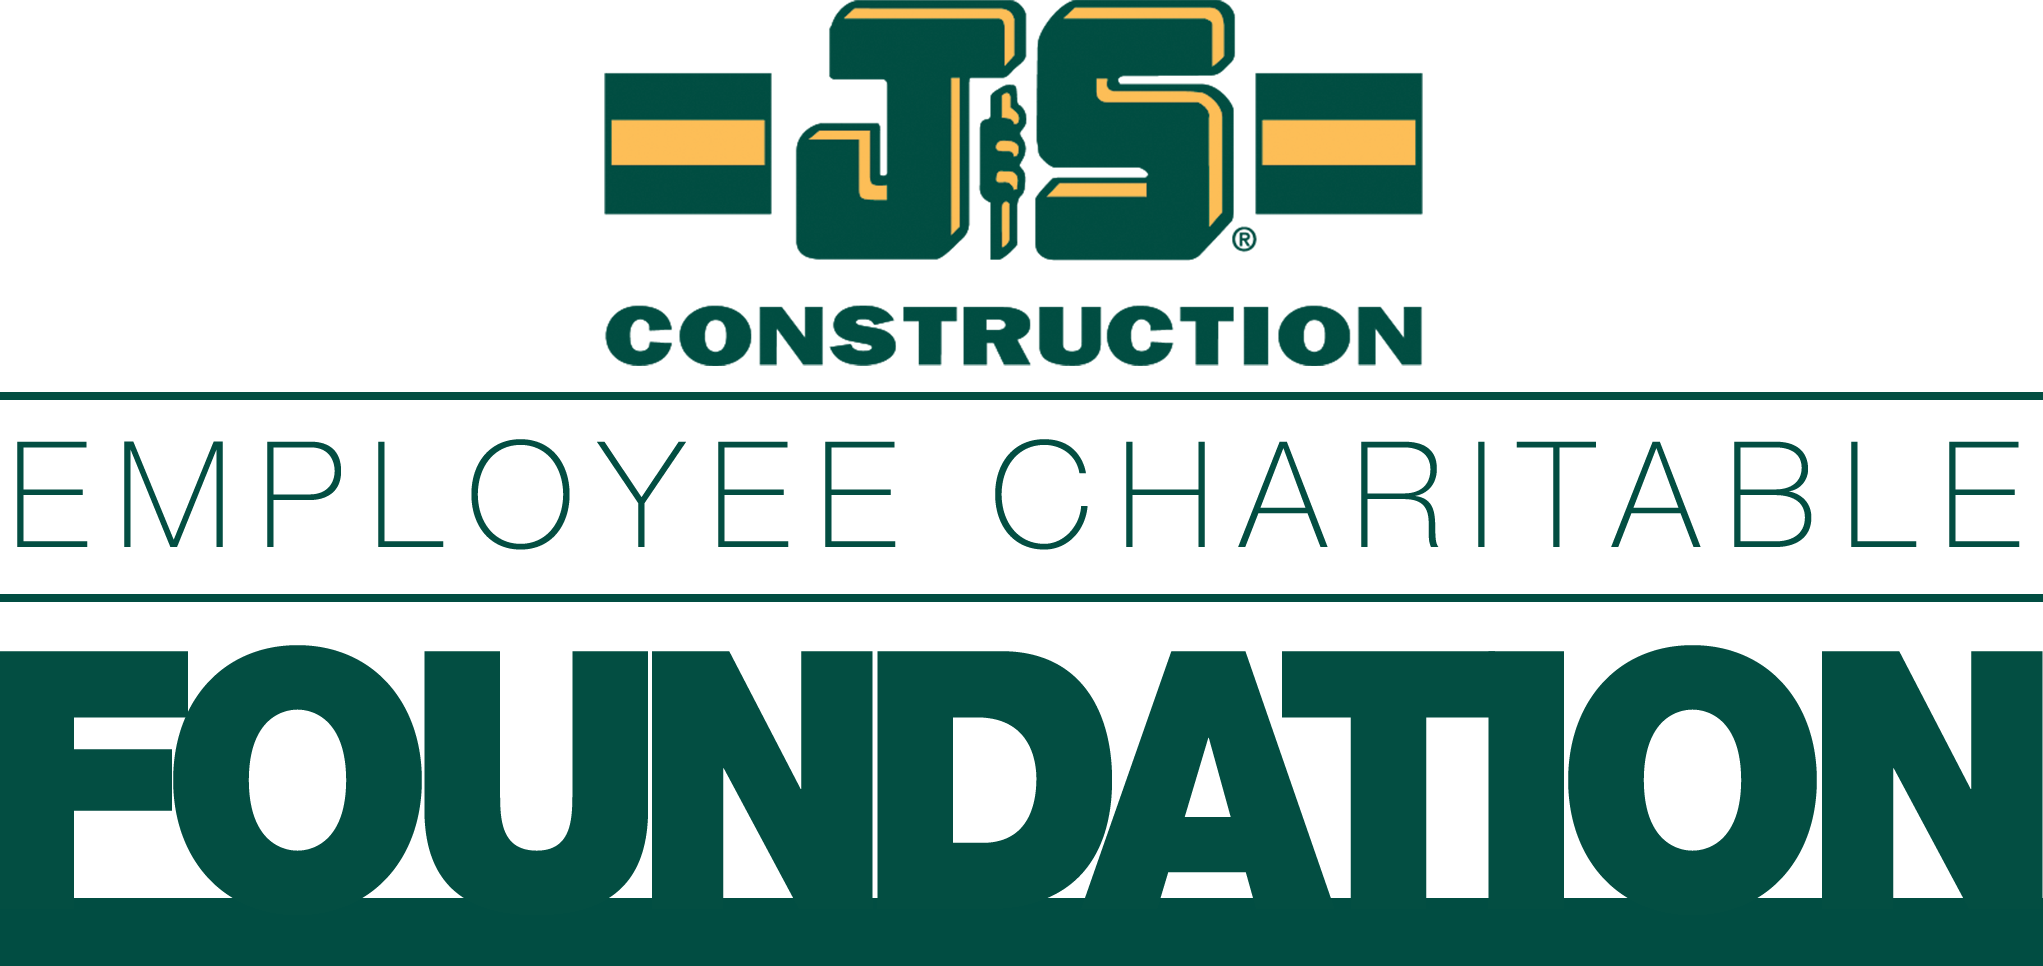 Employee Charitable Foundation -- ecf_logo_2016.png